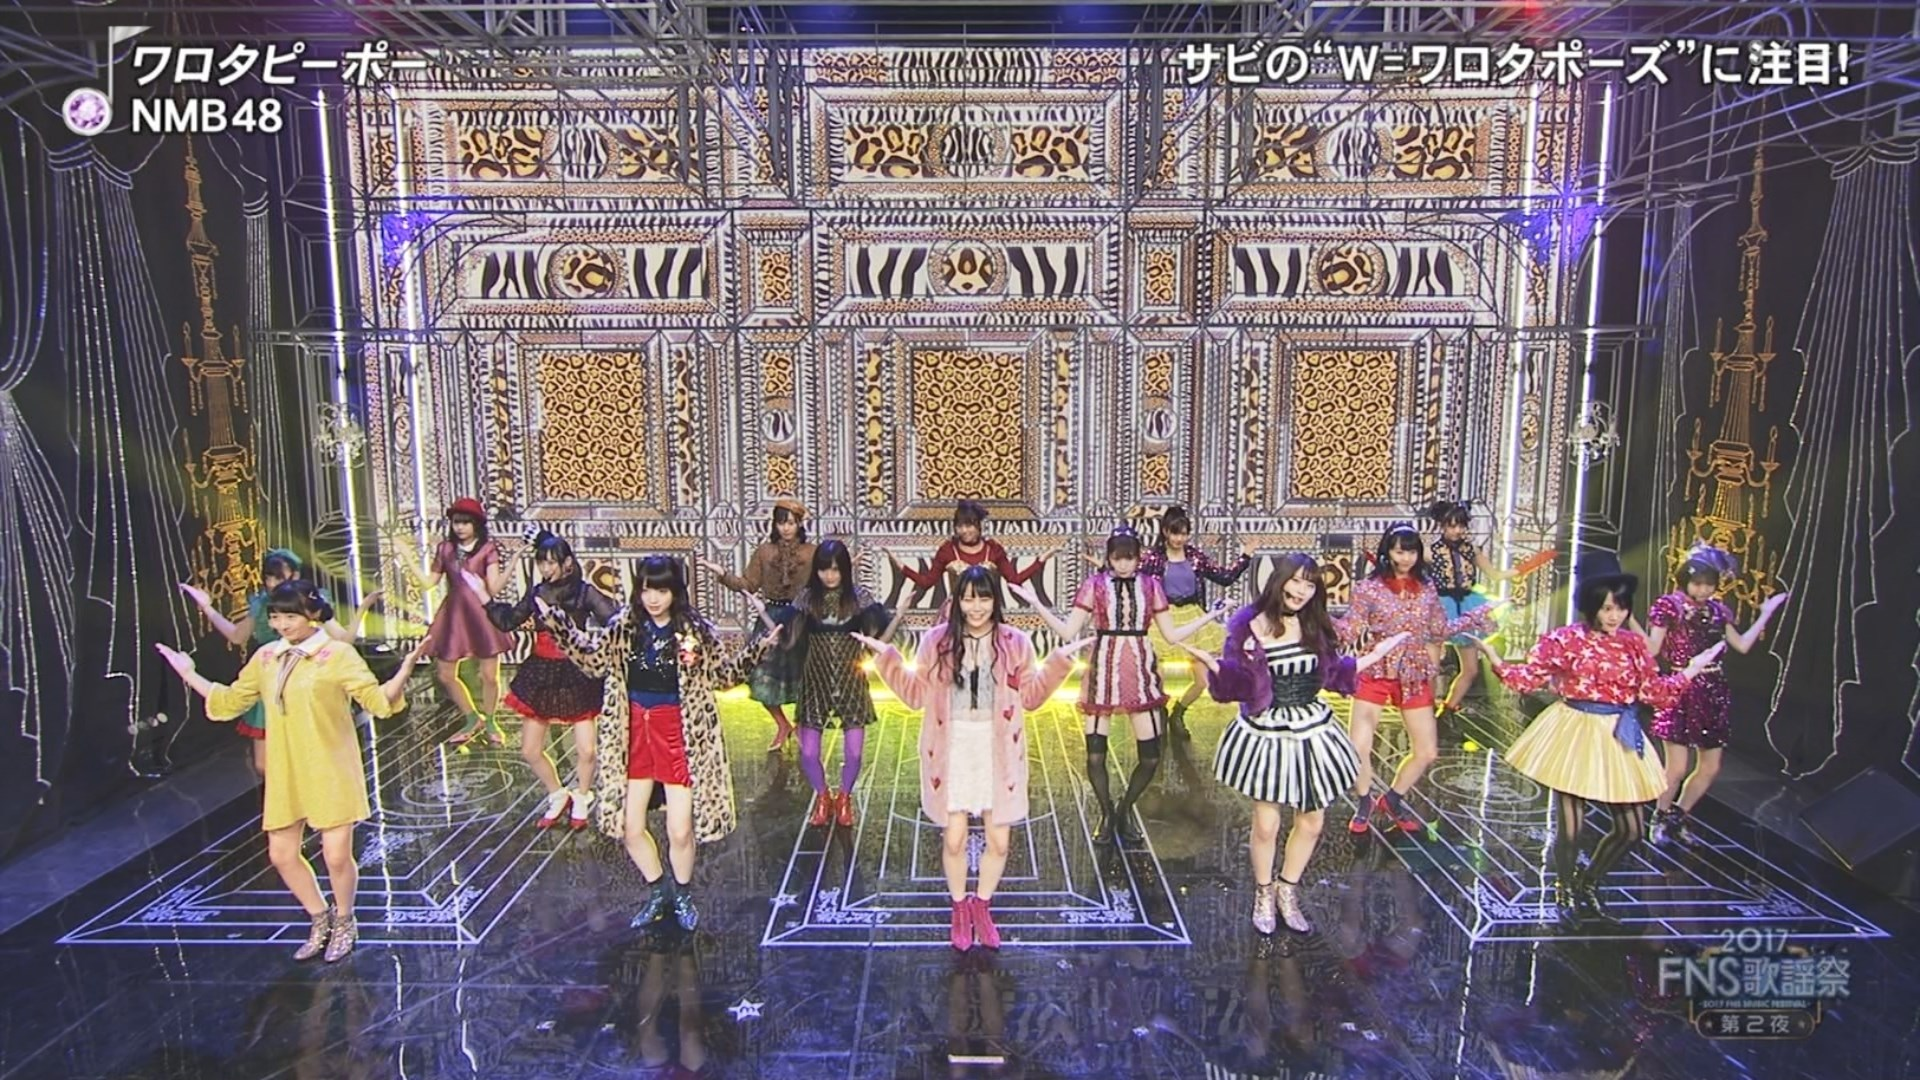 2017FNS歌謡祭第2夜・NMB48ワロタピーポーキャプ-102